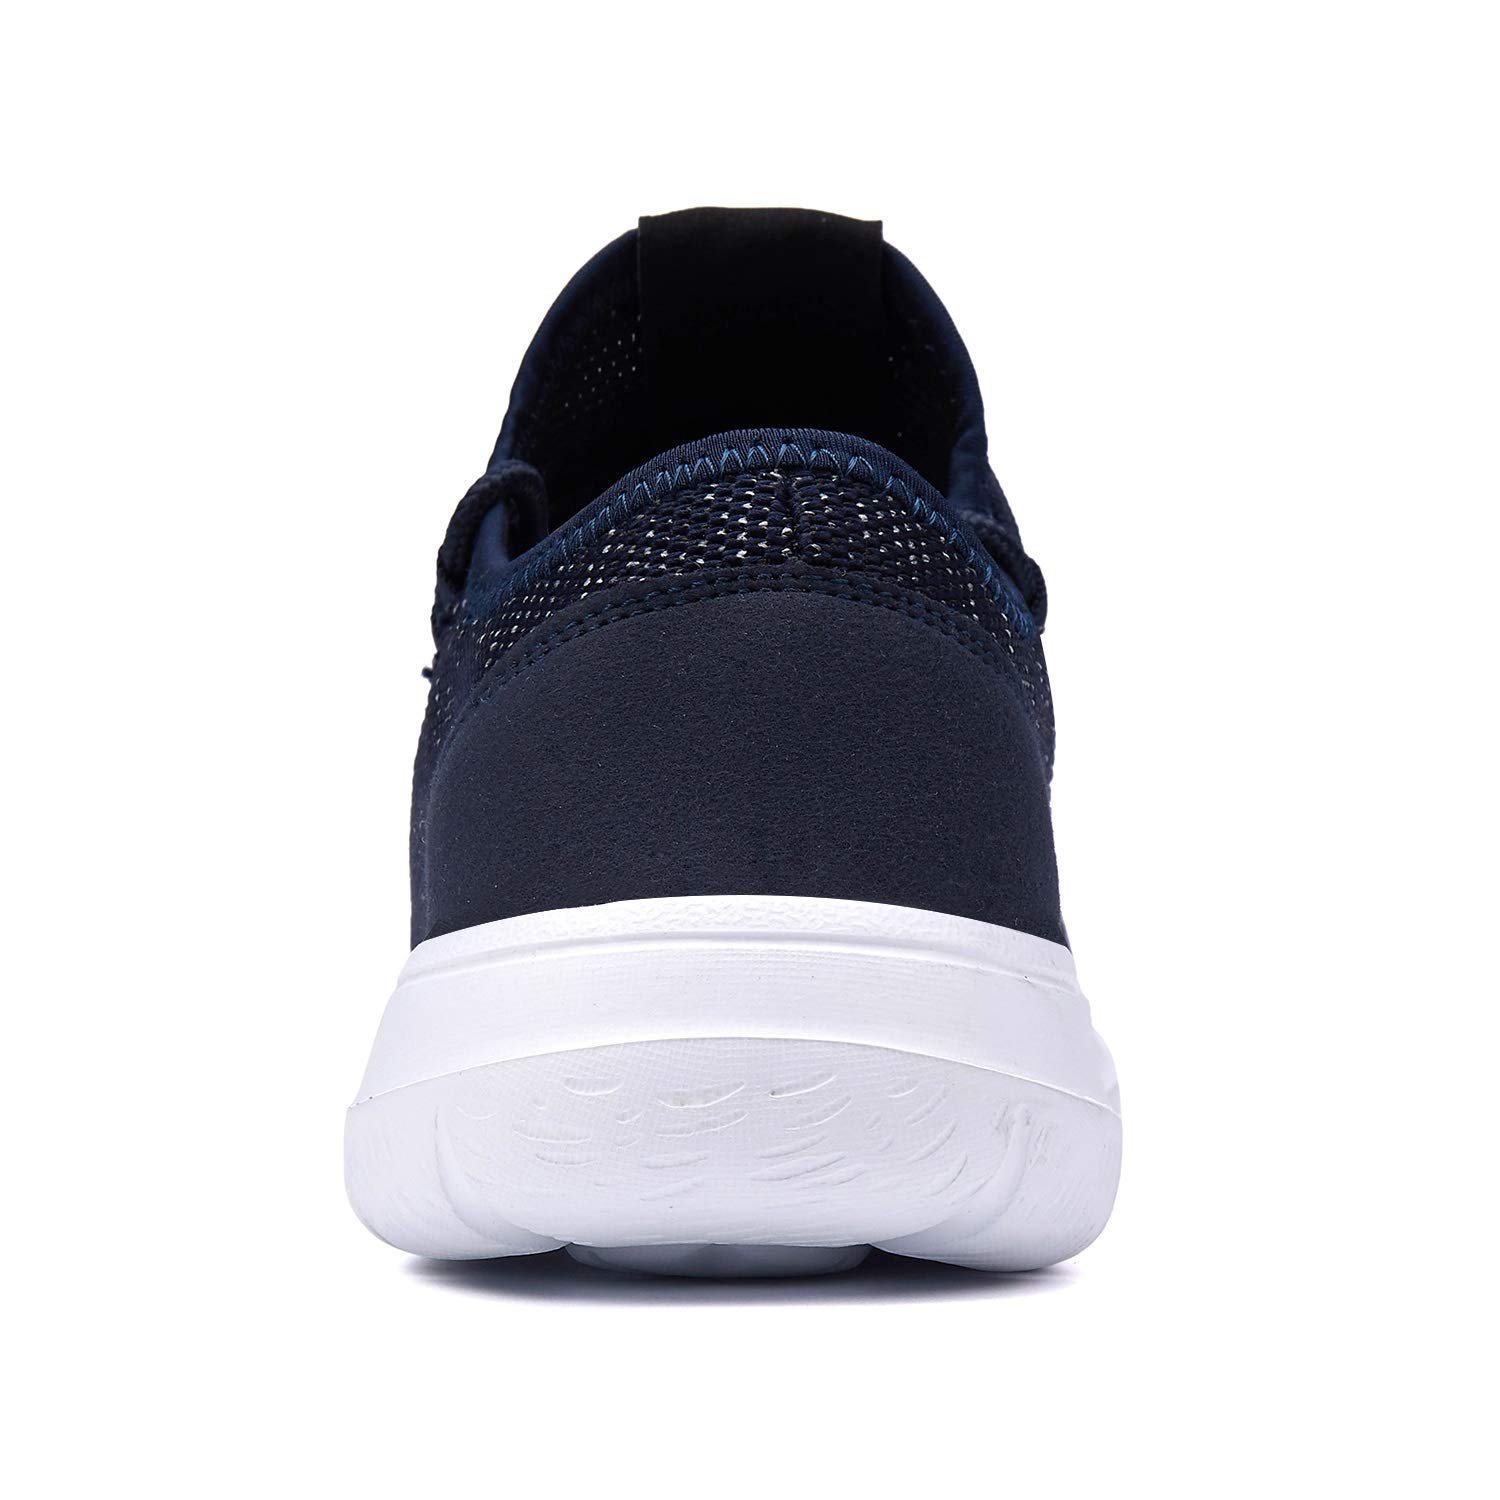 XUNMU Mens Walking Shoes Mesh Casual Athletic Shoes Running Shoes Lightweight Breathable Fashion Sneakers